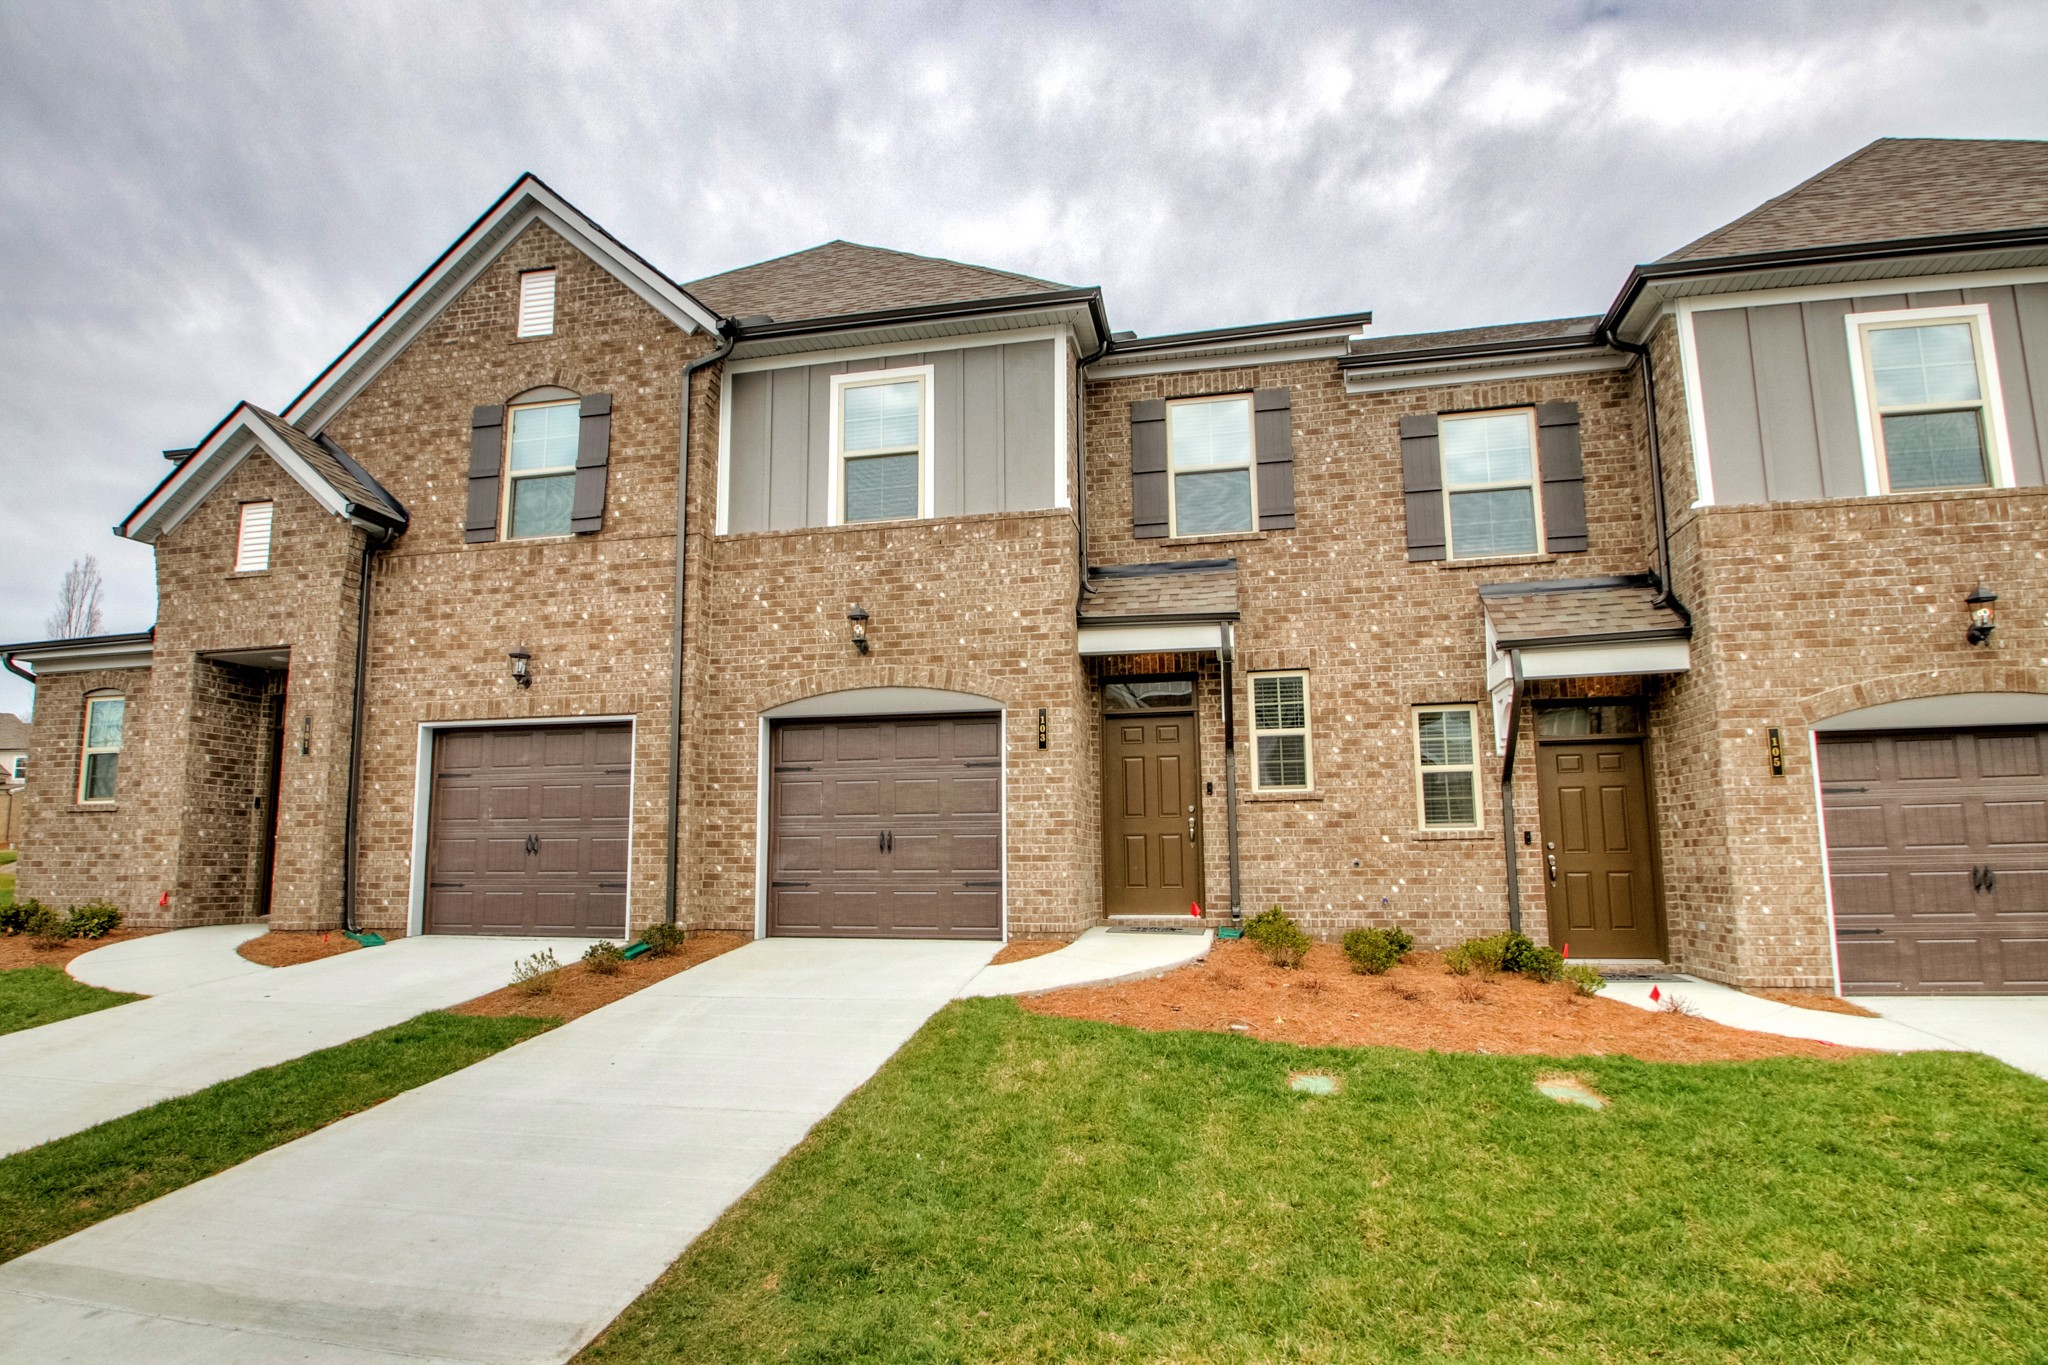 $244,990 - 3Br/3Ba -  for Sale in Holland Ridge Townhomes, Lebanon